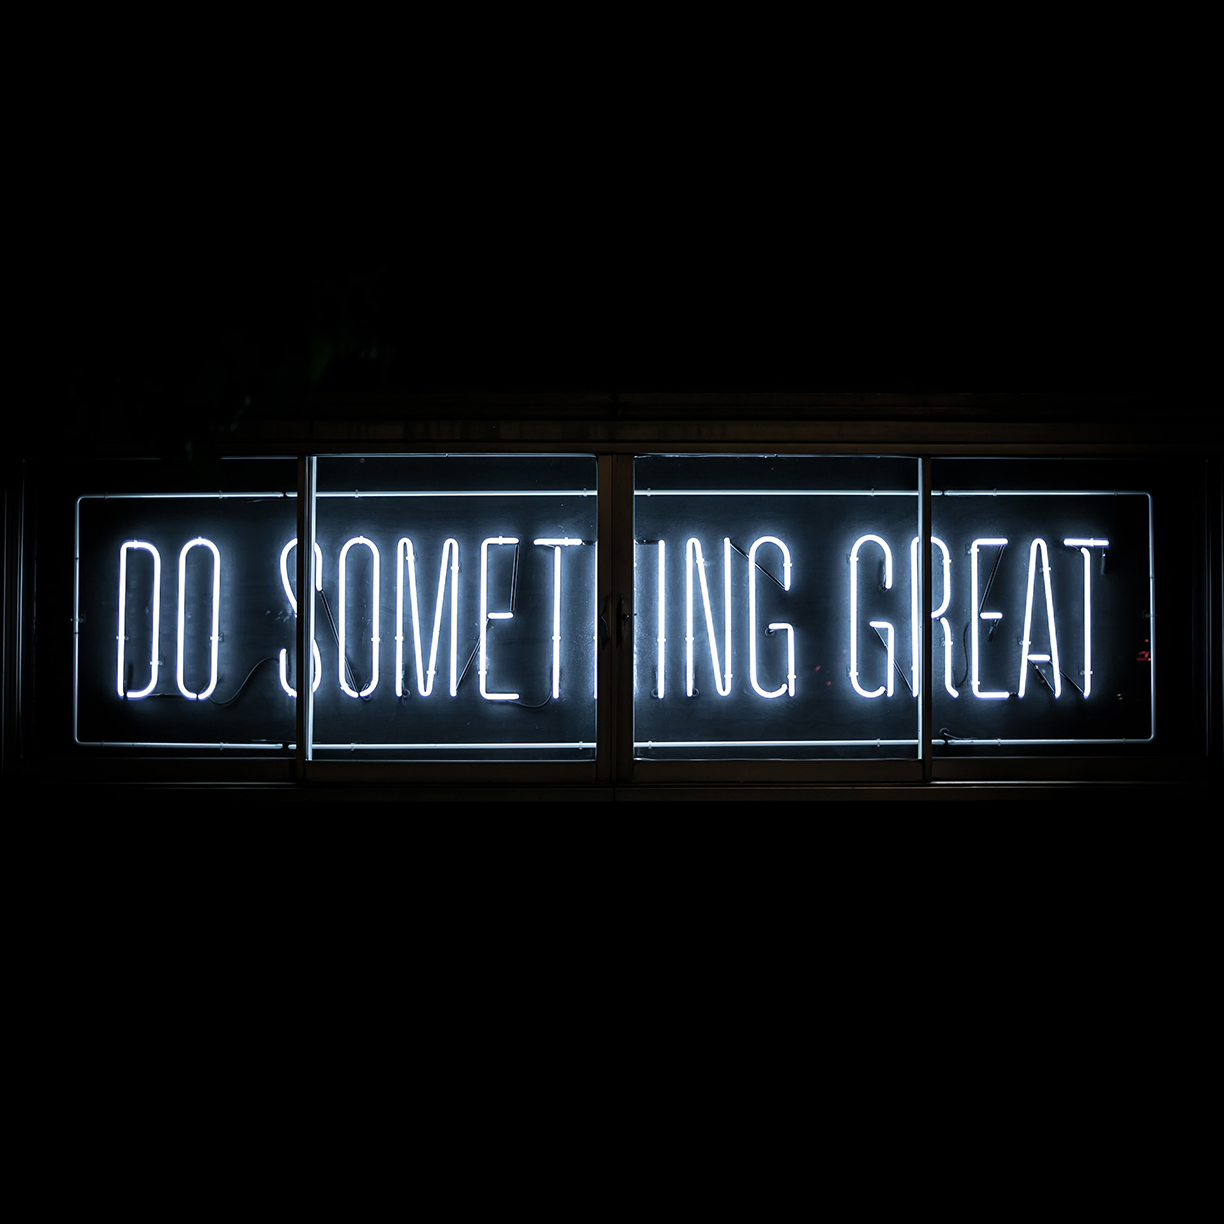 image of Do Something Great Photo By Clark Tibbs On Unsplash SQUARE